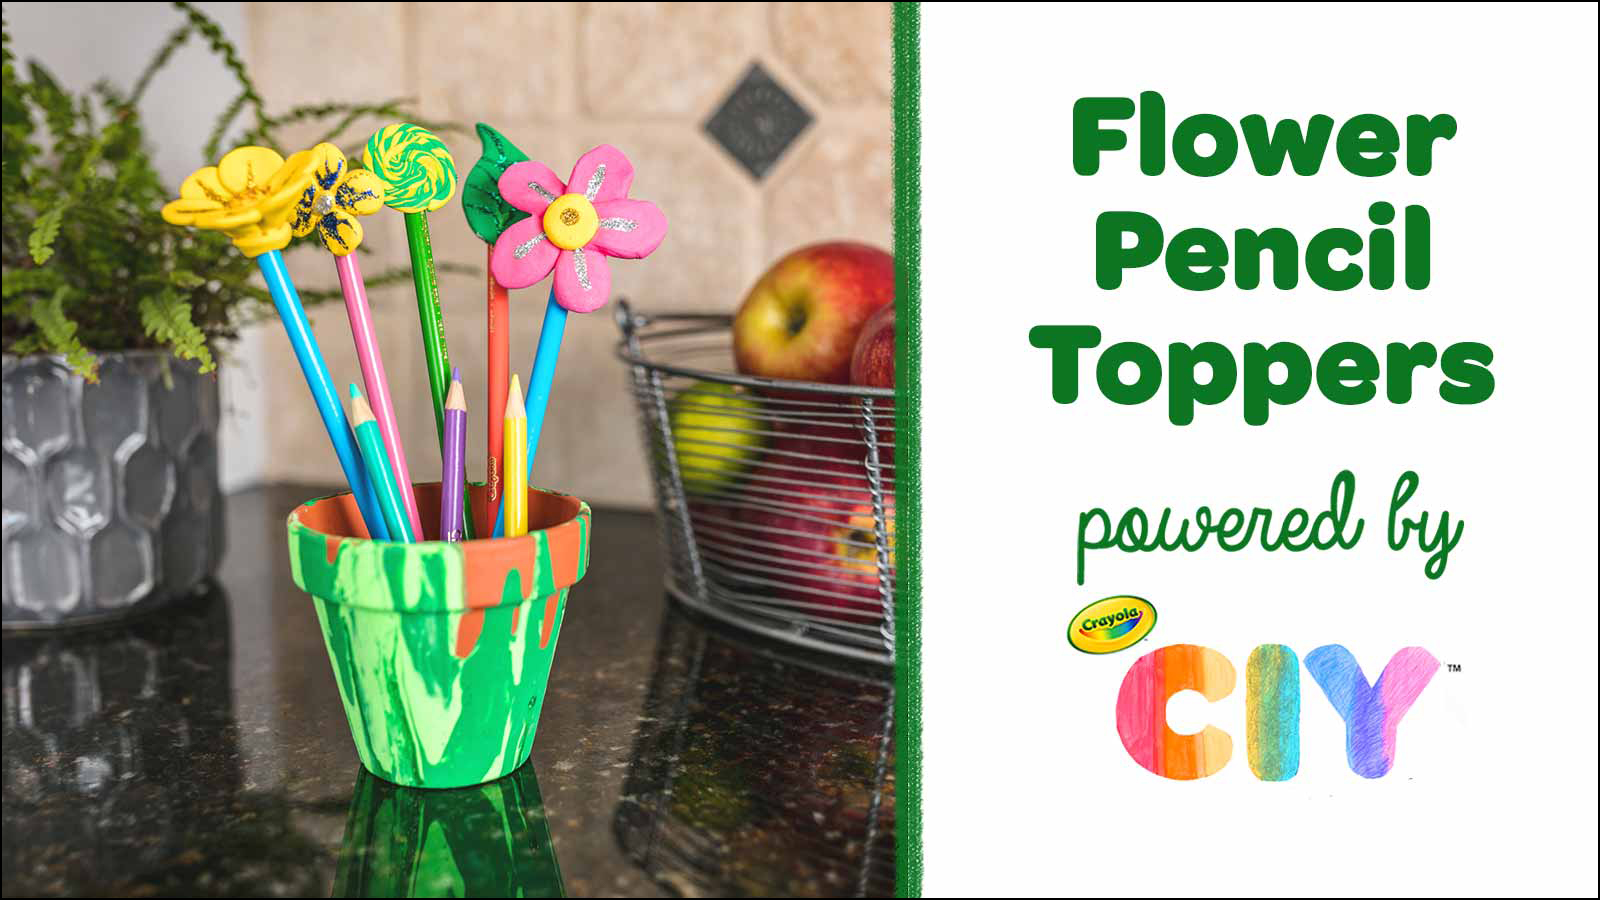 Flower Pencil Toppers CIY Video Poster Frame